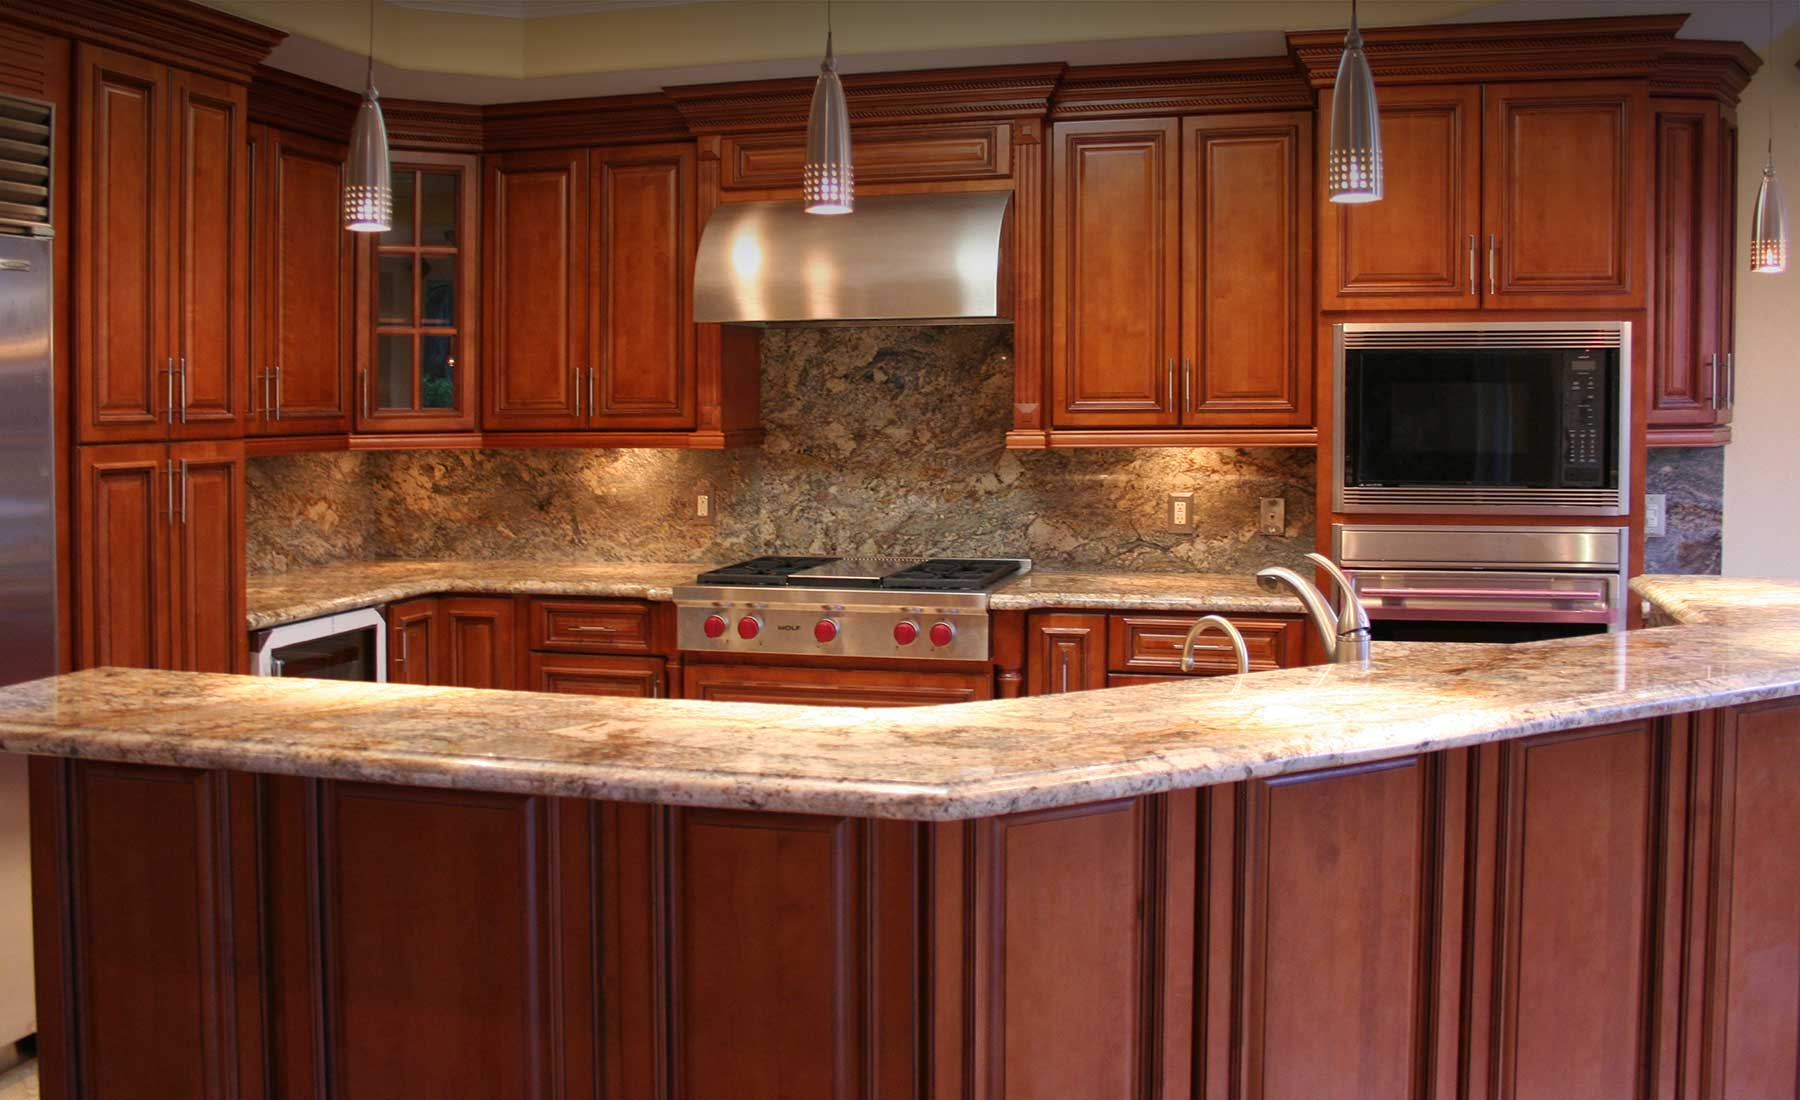 Interior Cambridge Kitchen Cabinets cambridge glazed kitchen cabinets denver cabinetry stone photo gallery